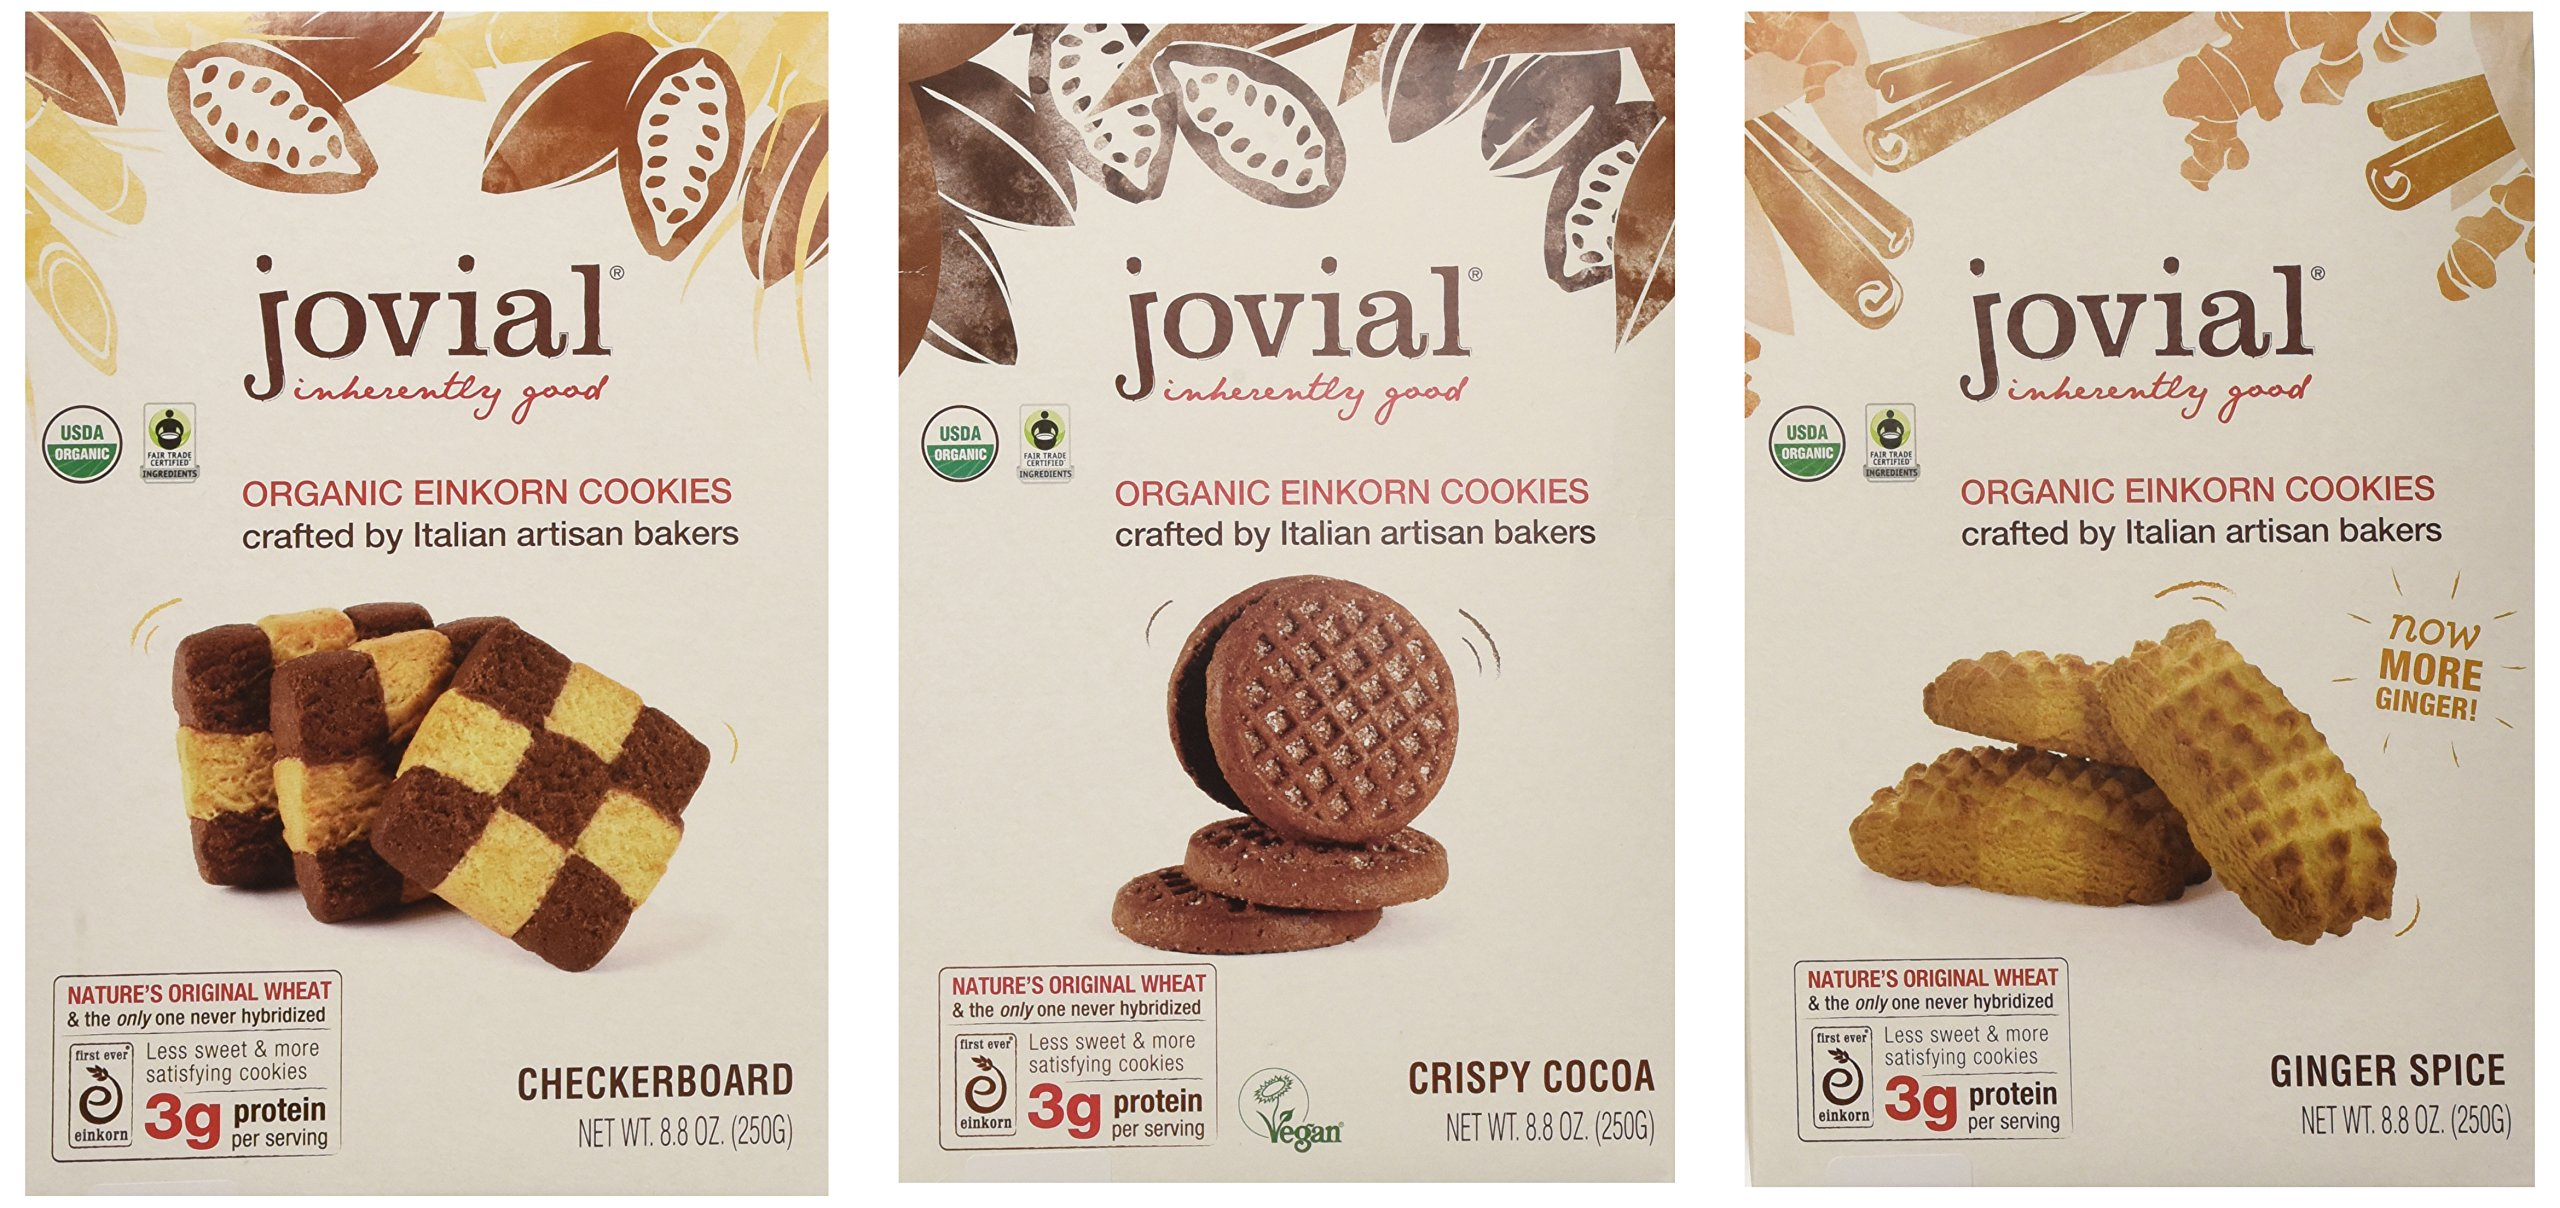 Jovial Organic Einkorn Cookies, Super Variety,(3-pack) 1 of Each Flavor -Checkerboard, Ginger Spice, Crispy Cocoa - 8.8 Oz. each